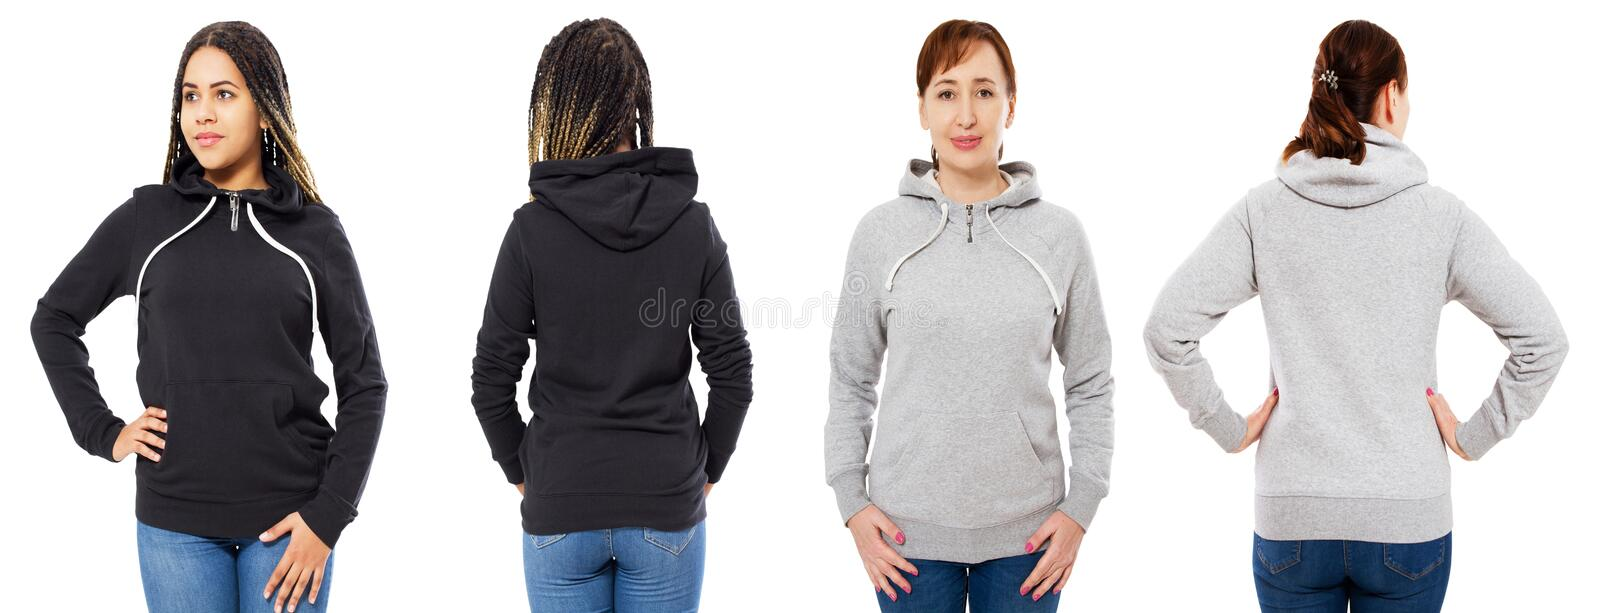 Female hood collage front and back view isolated - caucasian and black woman in hoodie mock up stock image